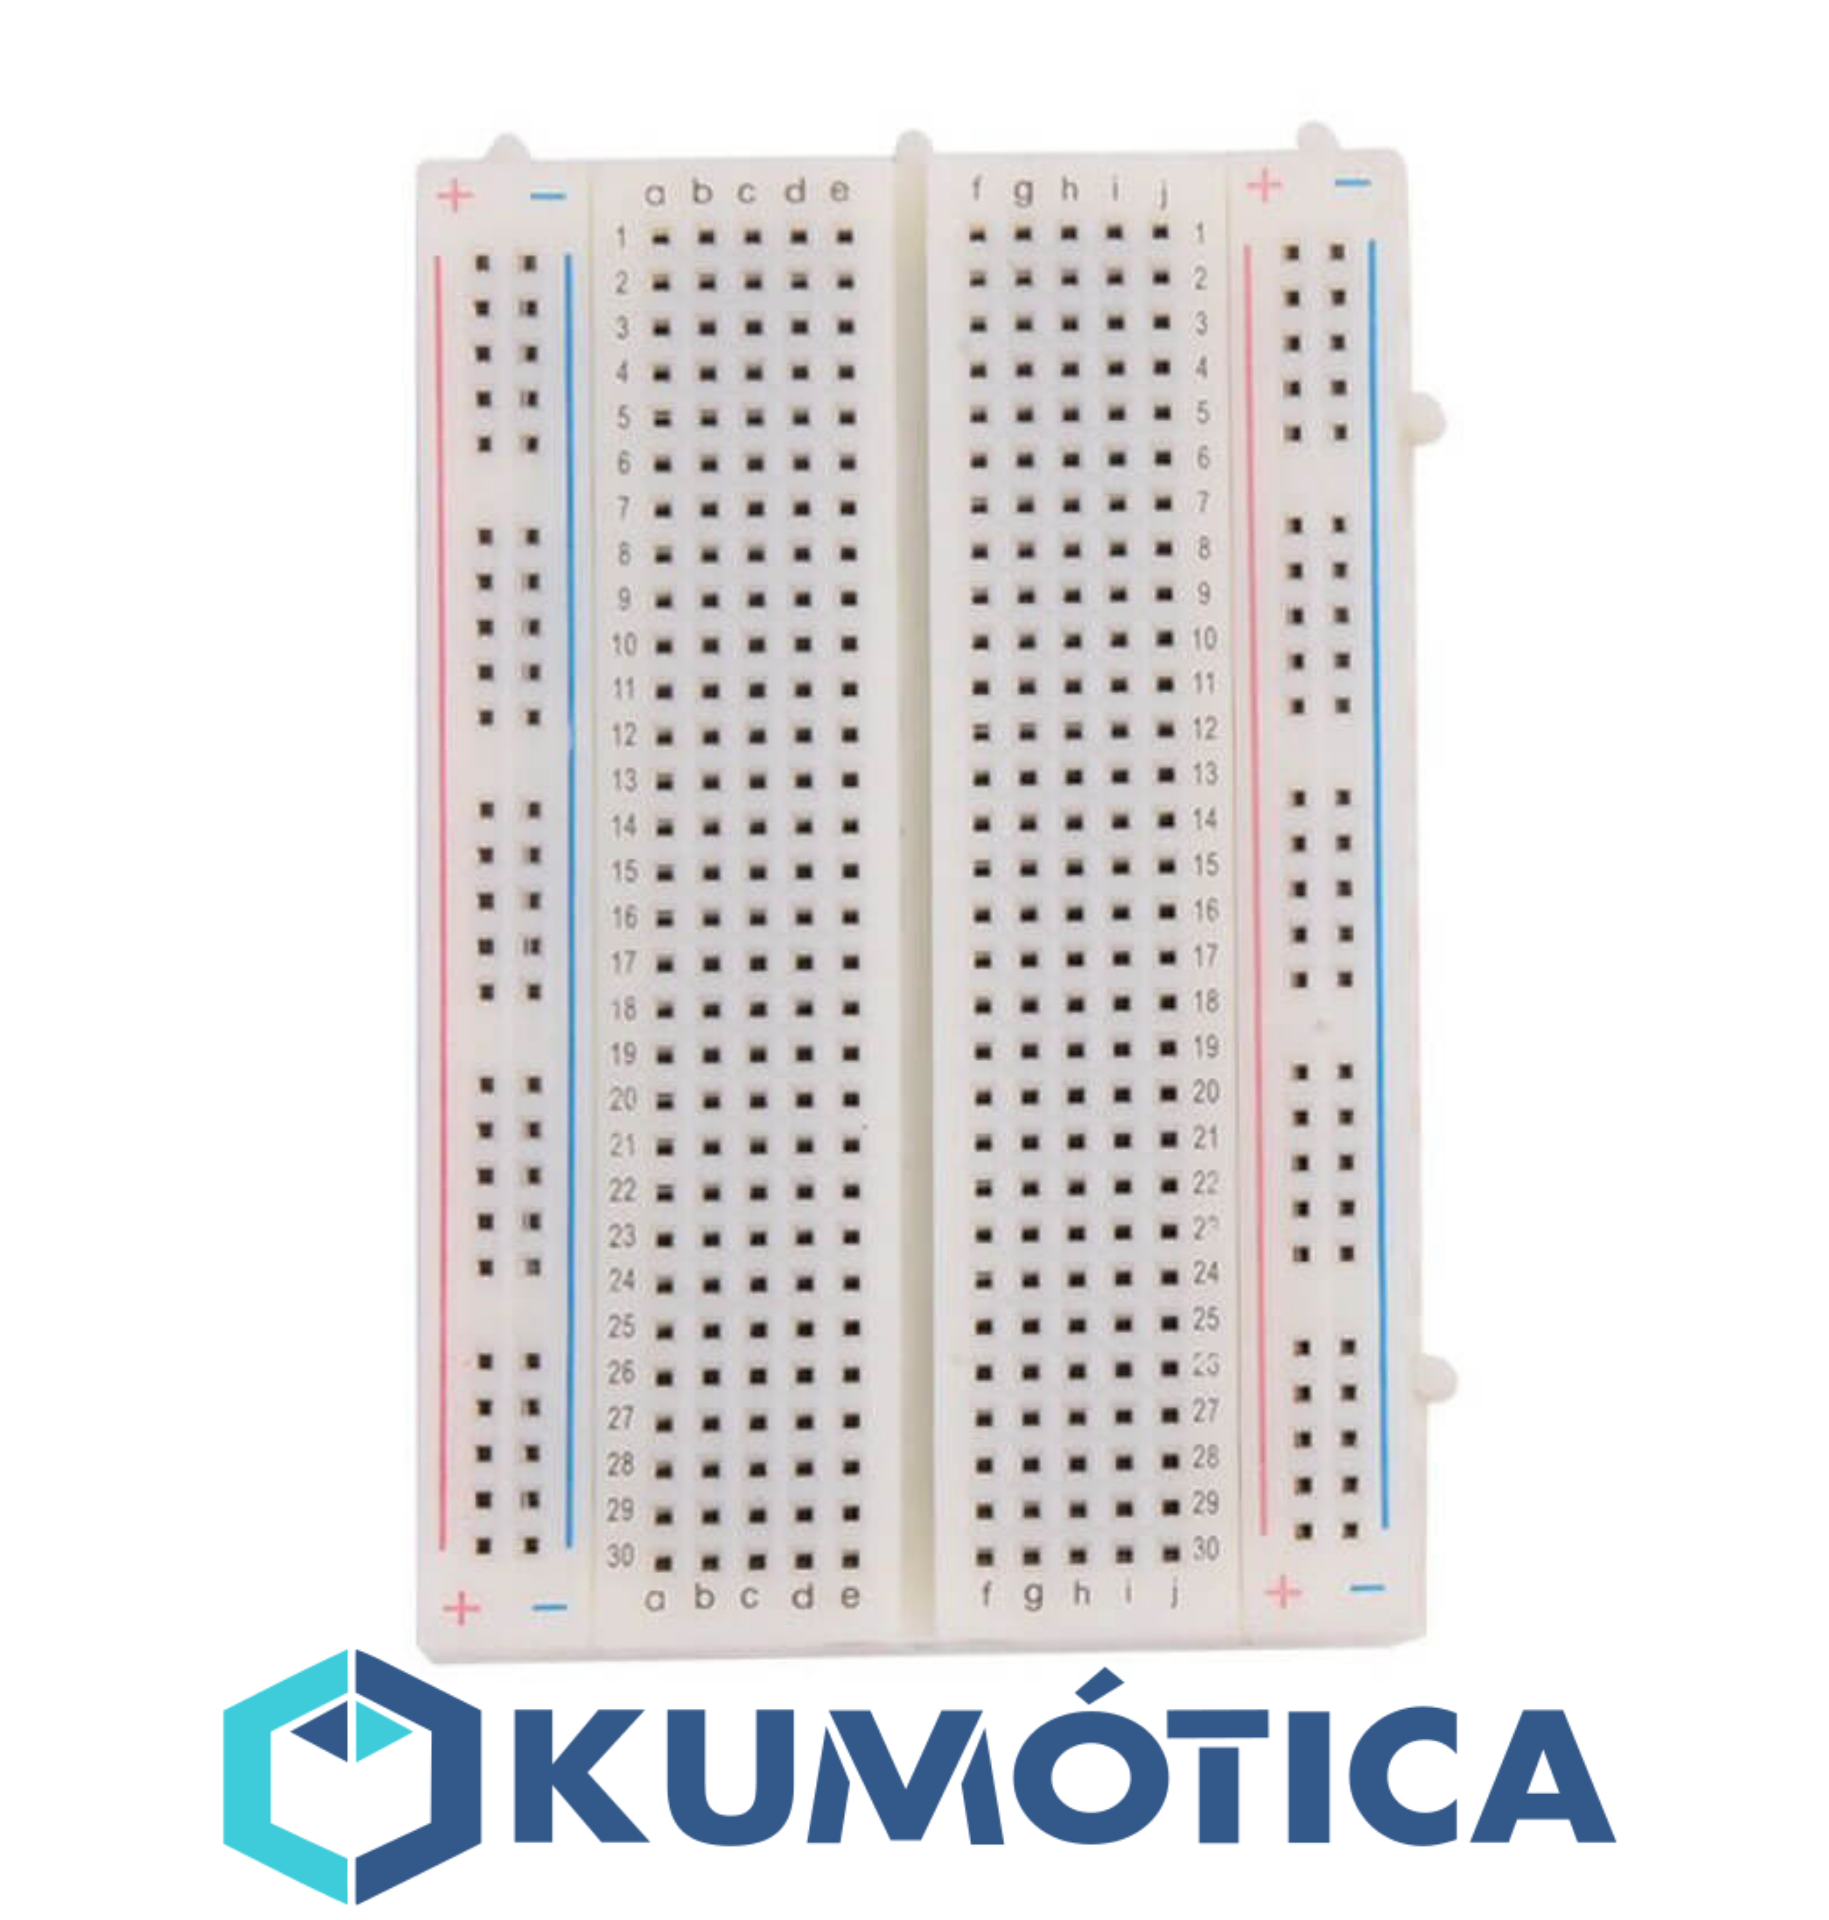 Breadboard Breadboard 400 Pin, Connection Board For Arduino Projects/Rasperri Pi